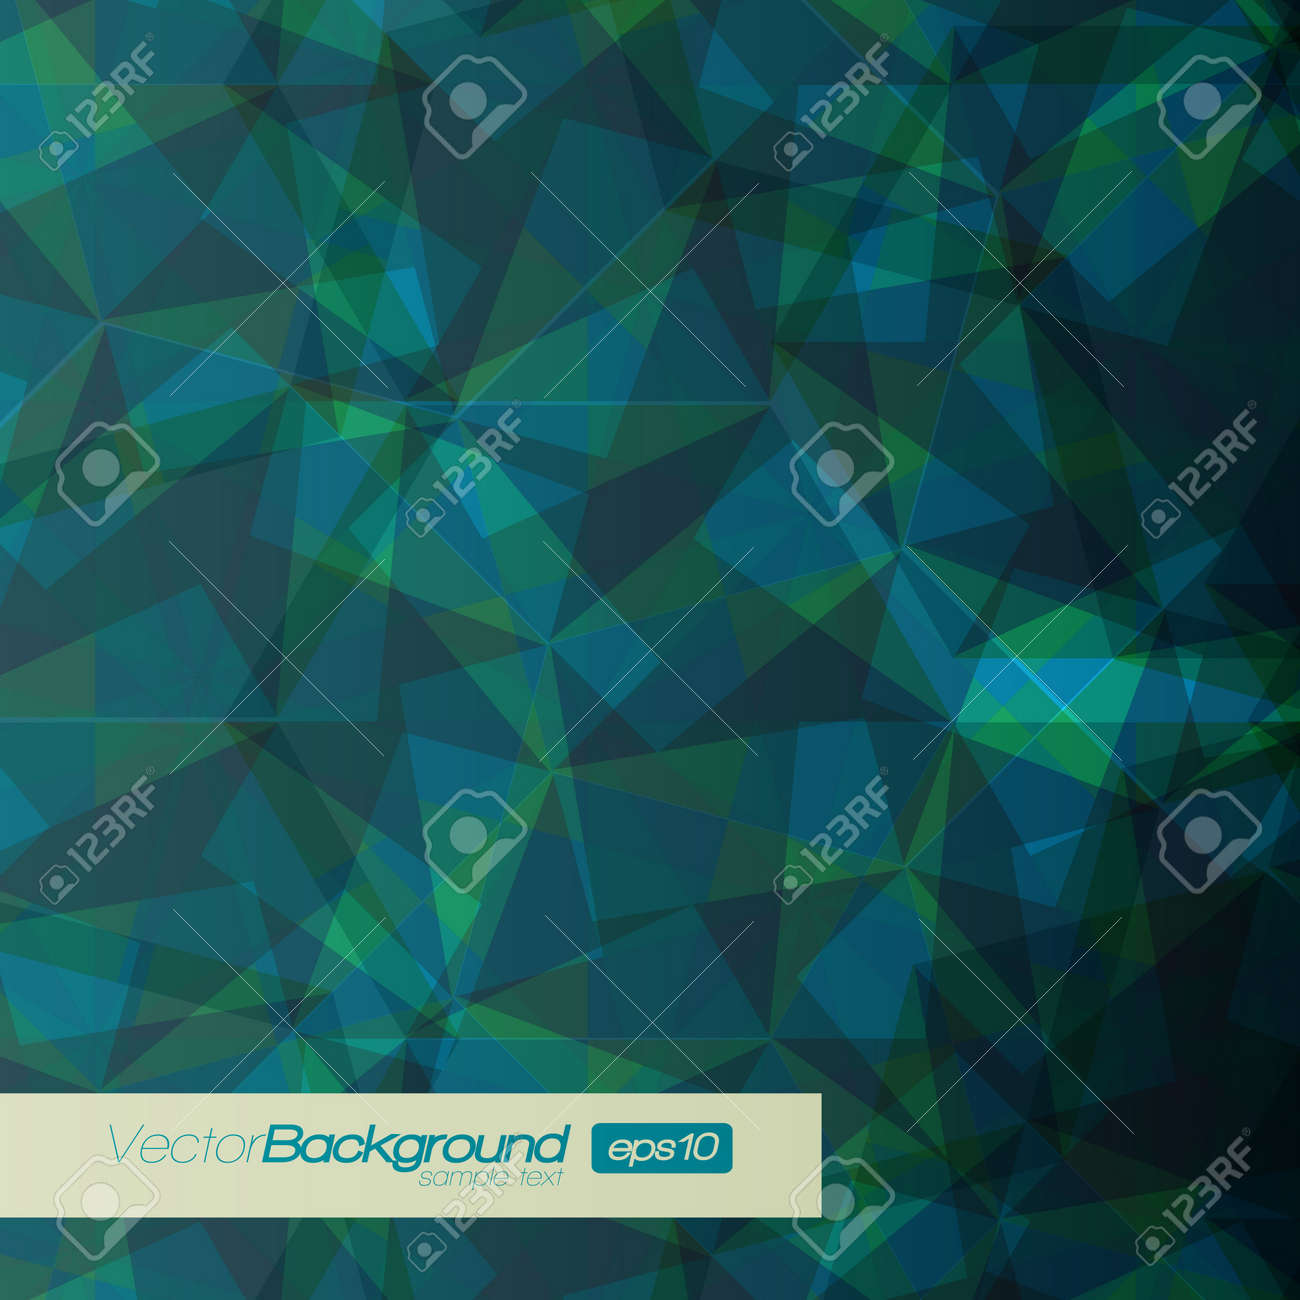 Abstract background for design illustration Stock Vector - 15282779